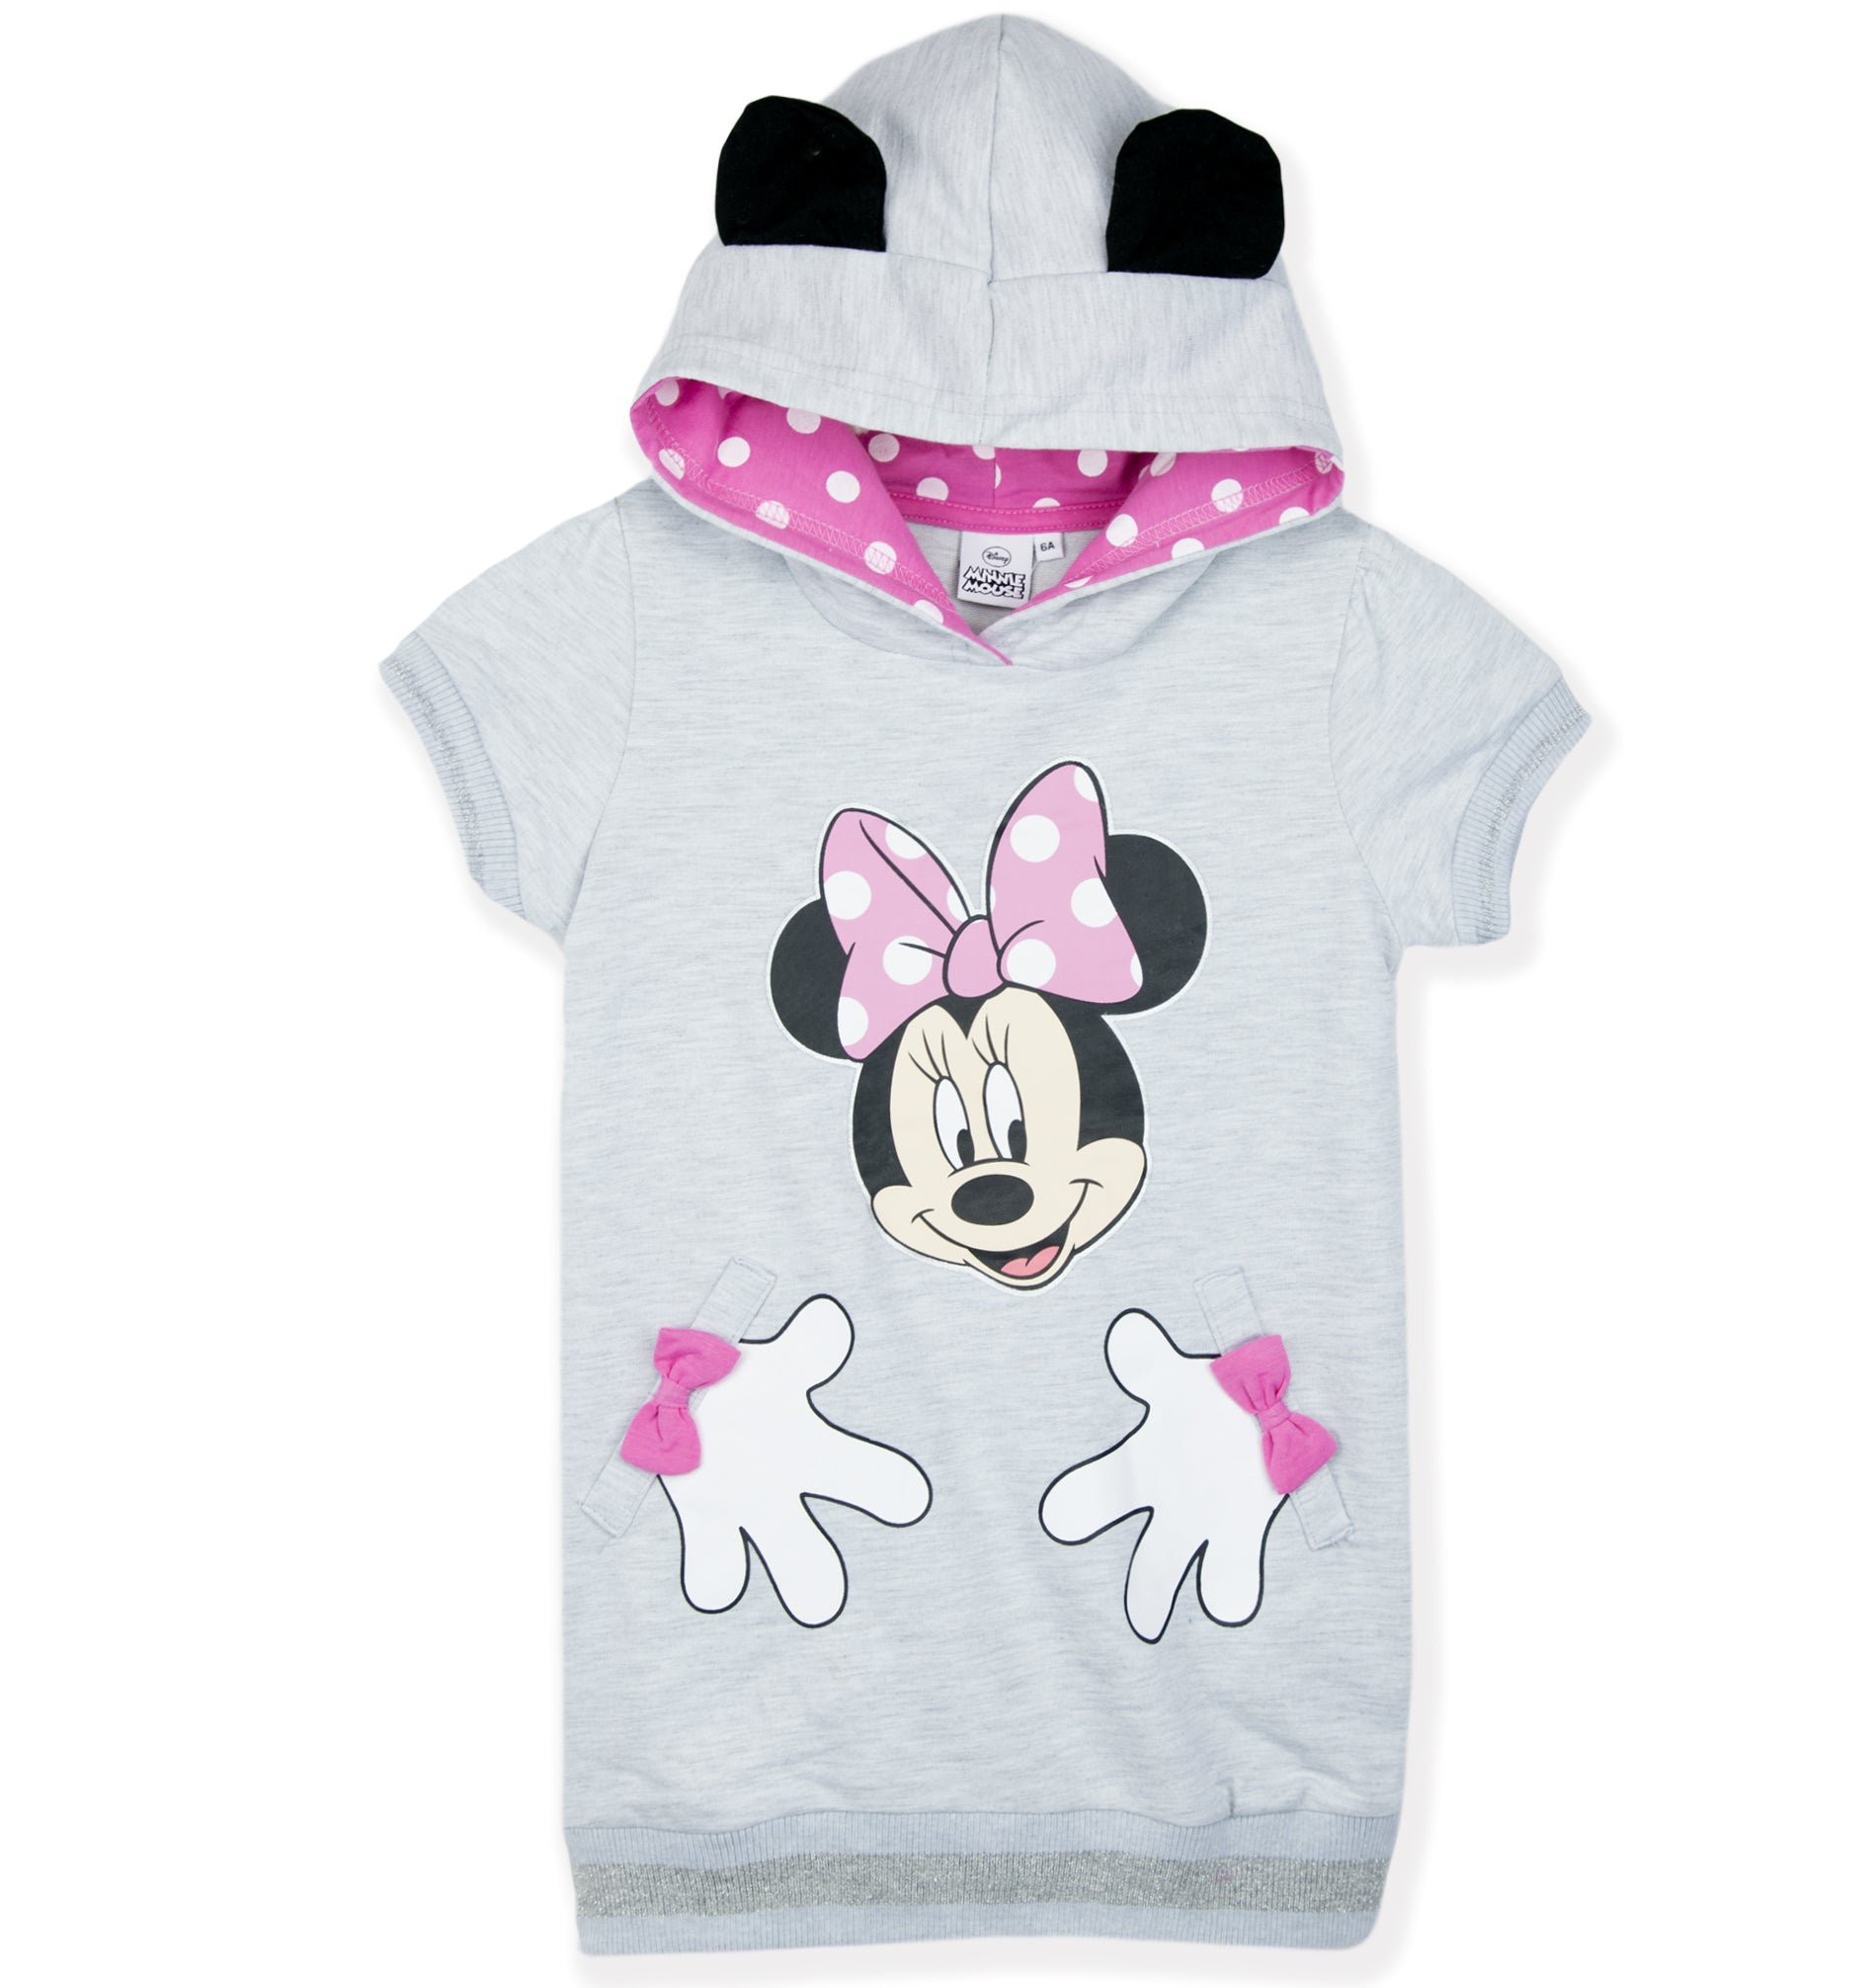 Disney Minnie Mouse Girls Short Sleeve Long Hoodie, Tunic Dress with Ears 2-8 Years - Grey